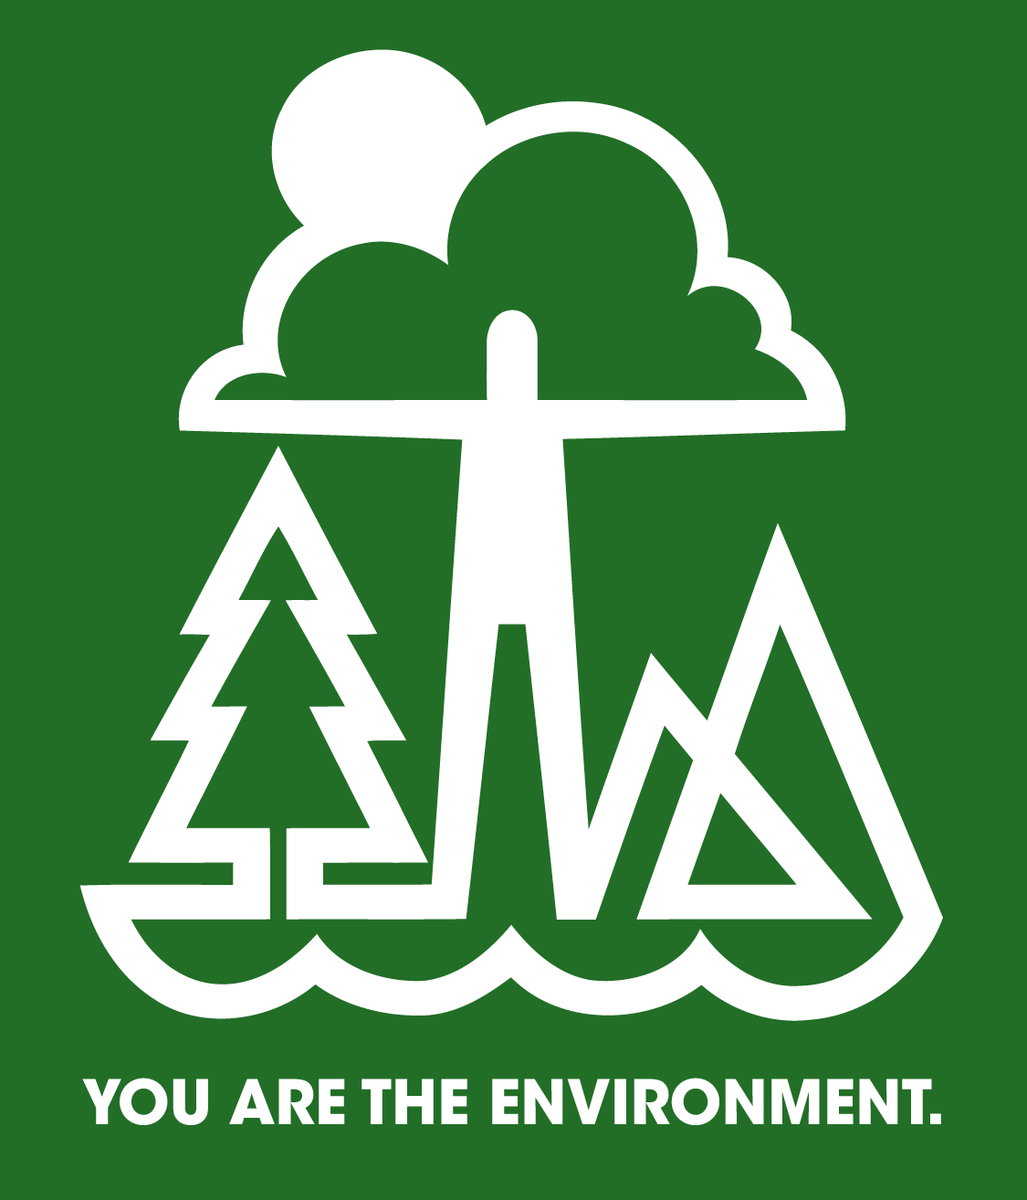 You are the environment